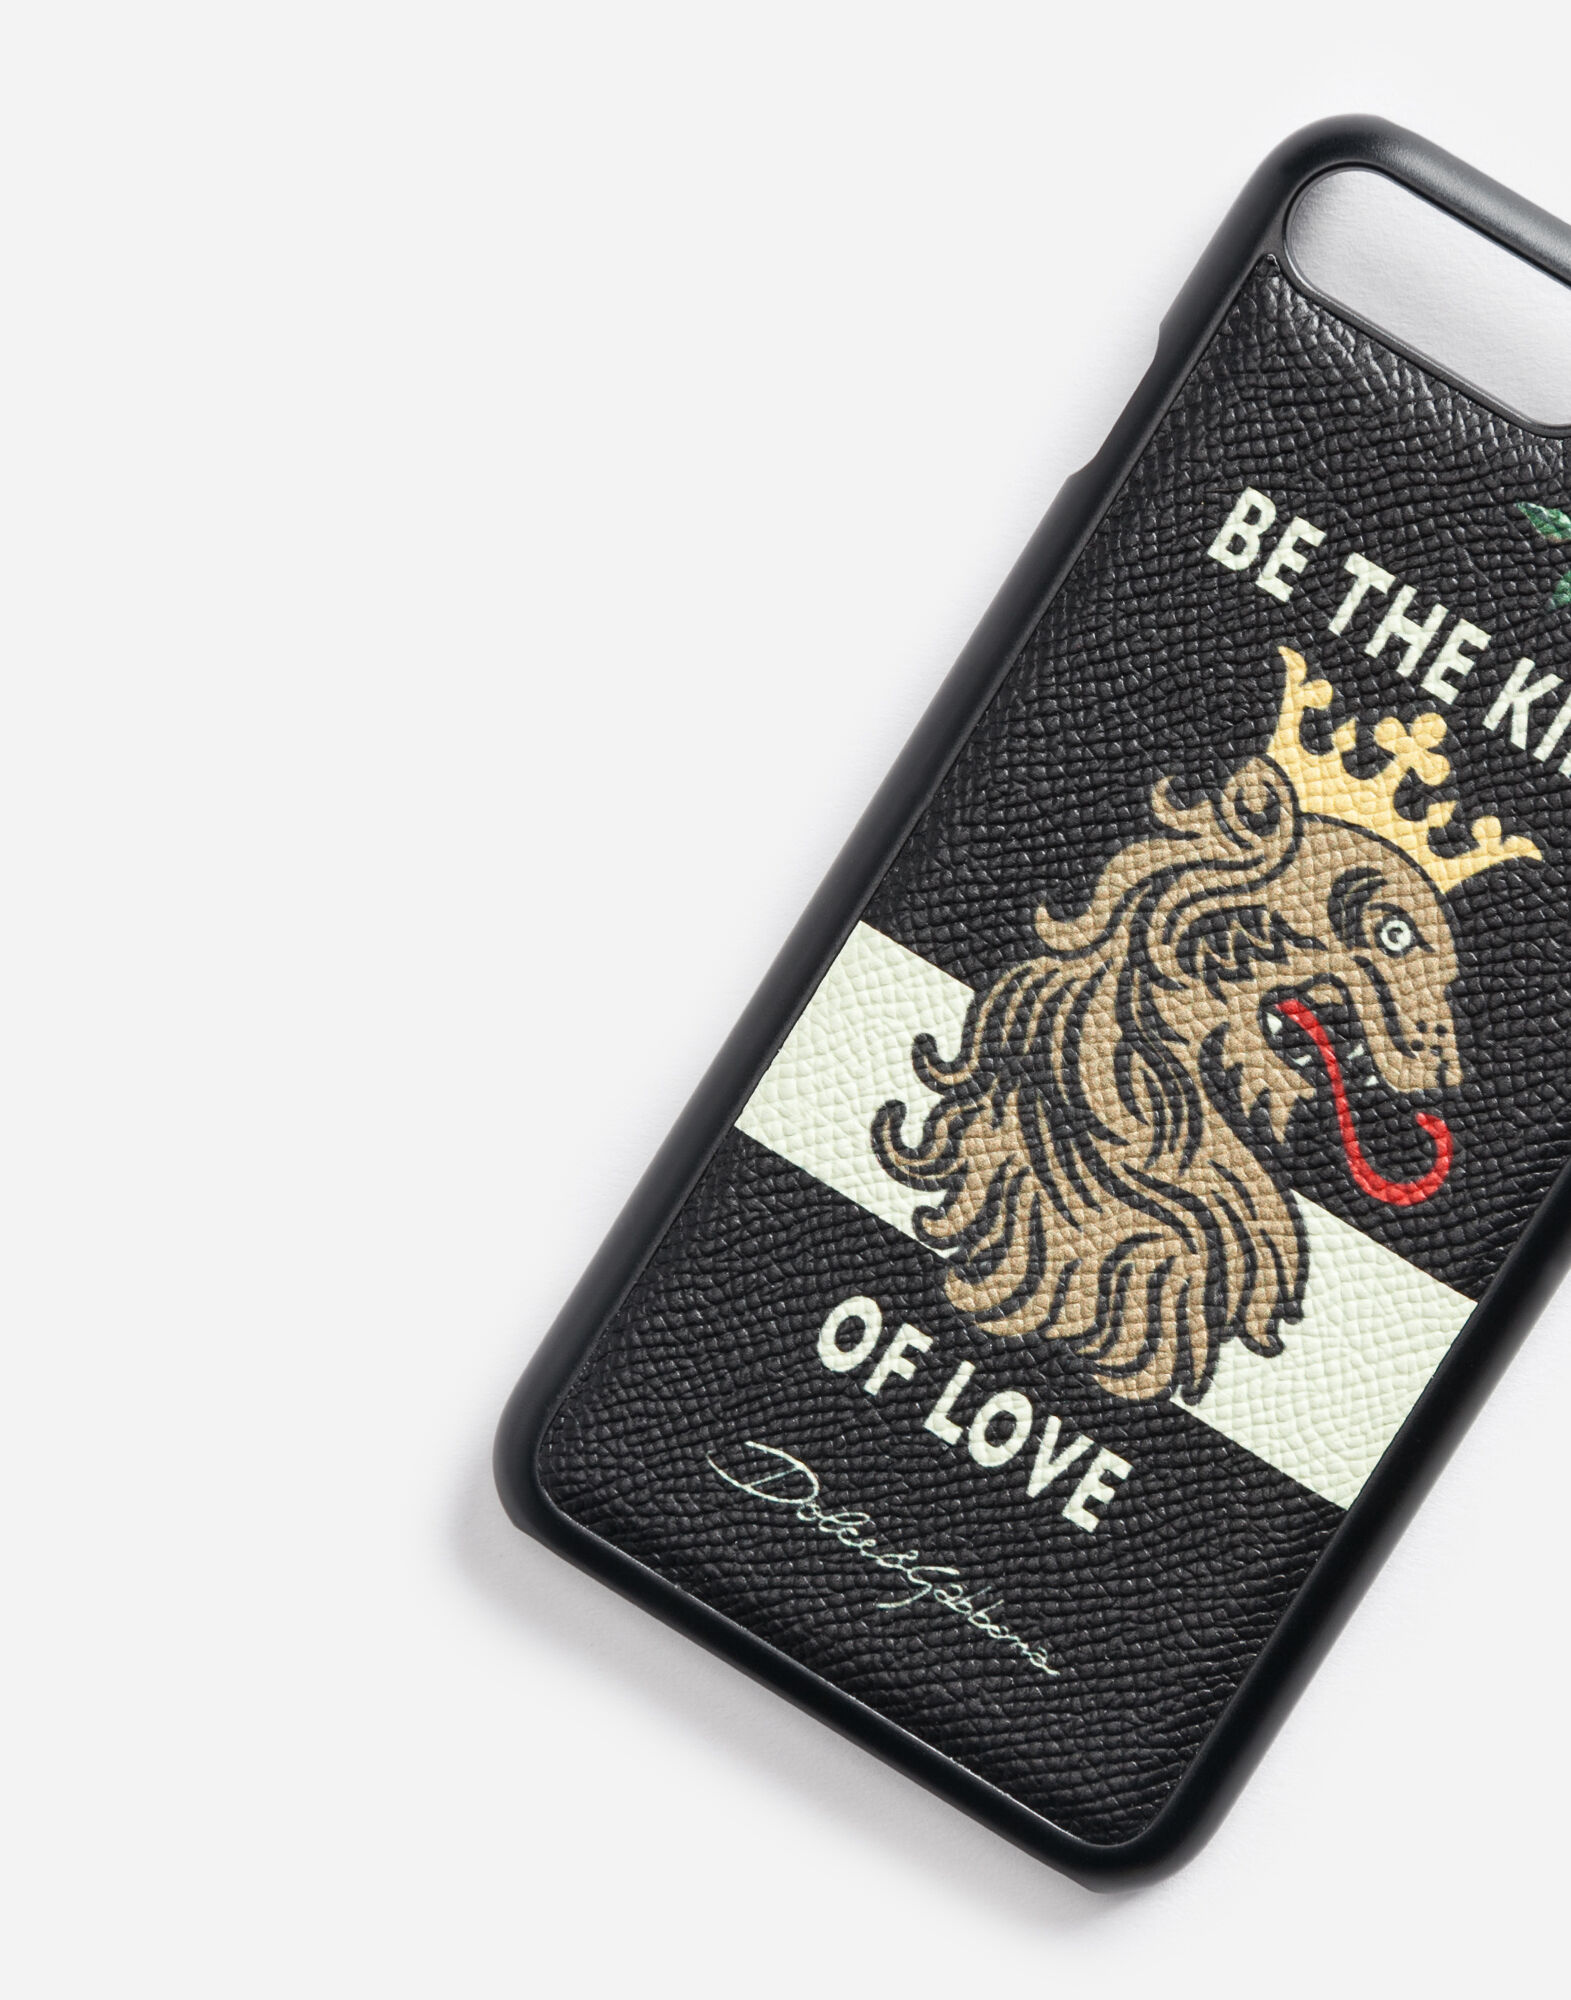 iPHONE 7 PLUS COVER WITH PRINTED DAUPHINE LEATHER DETAIL